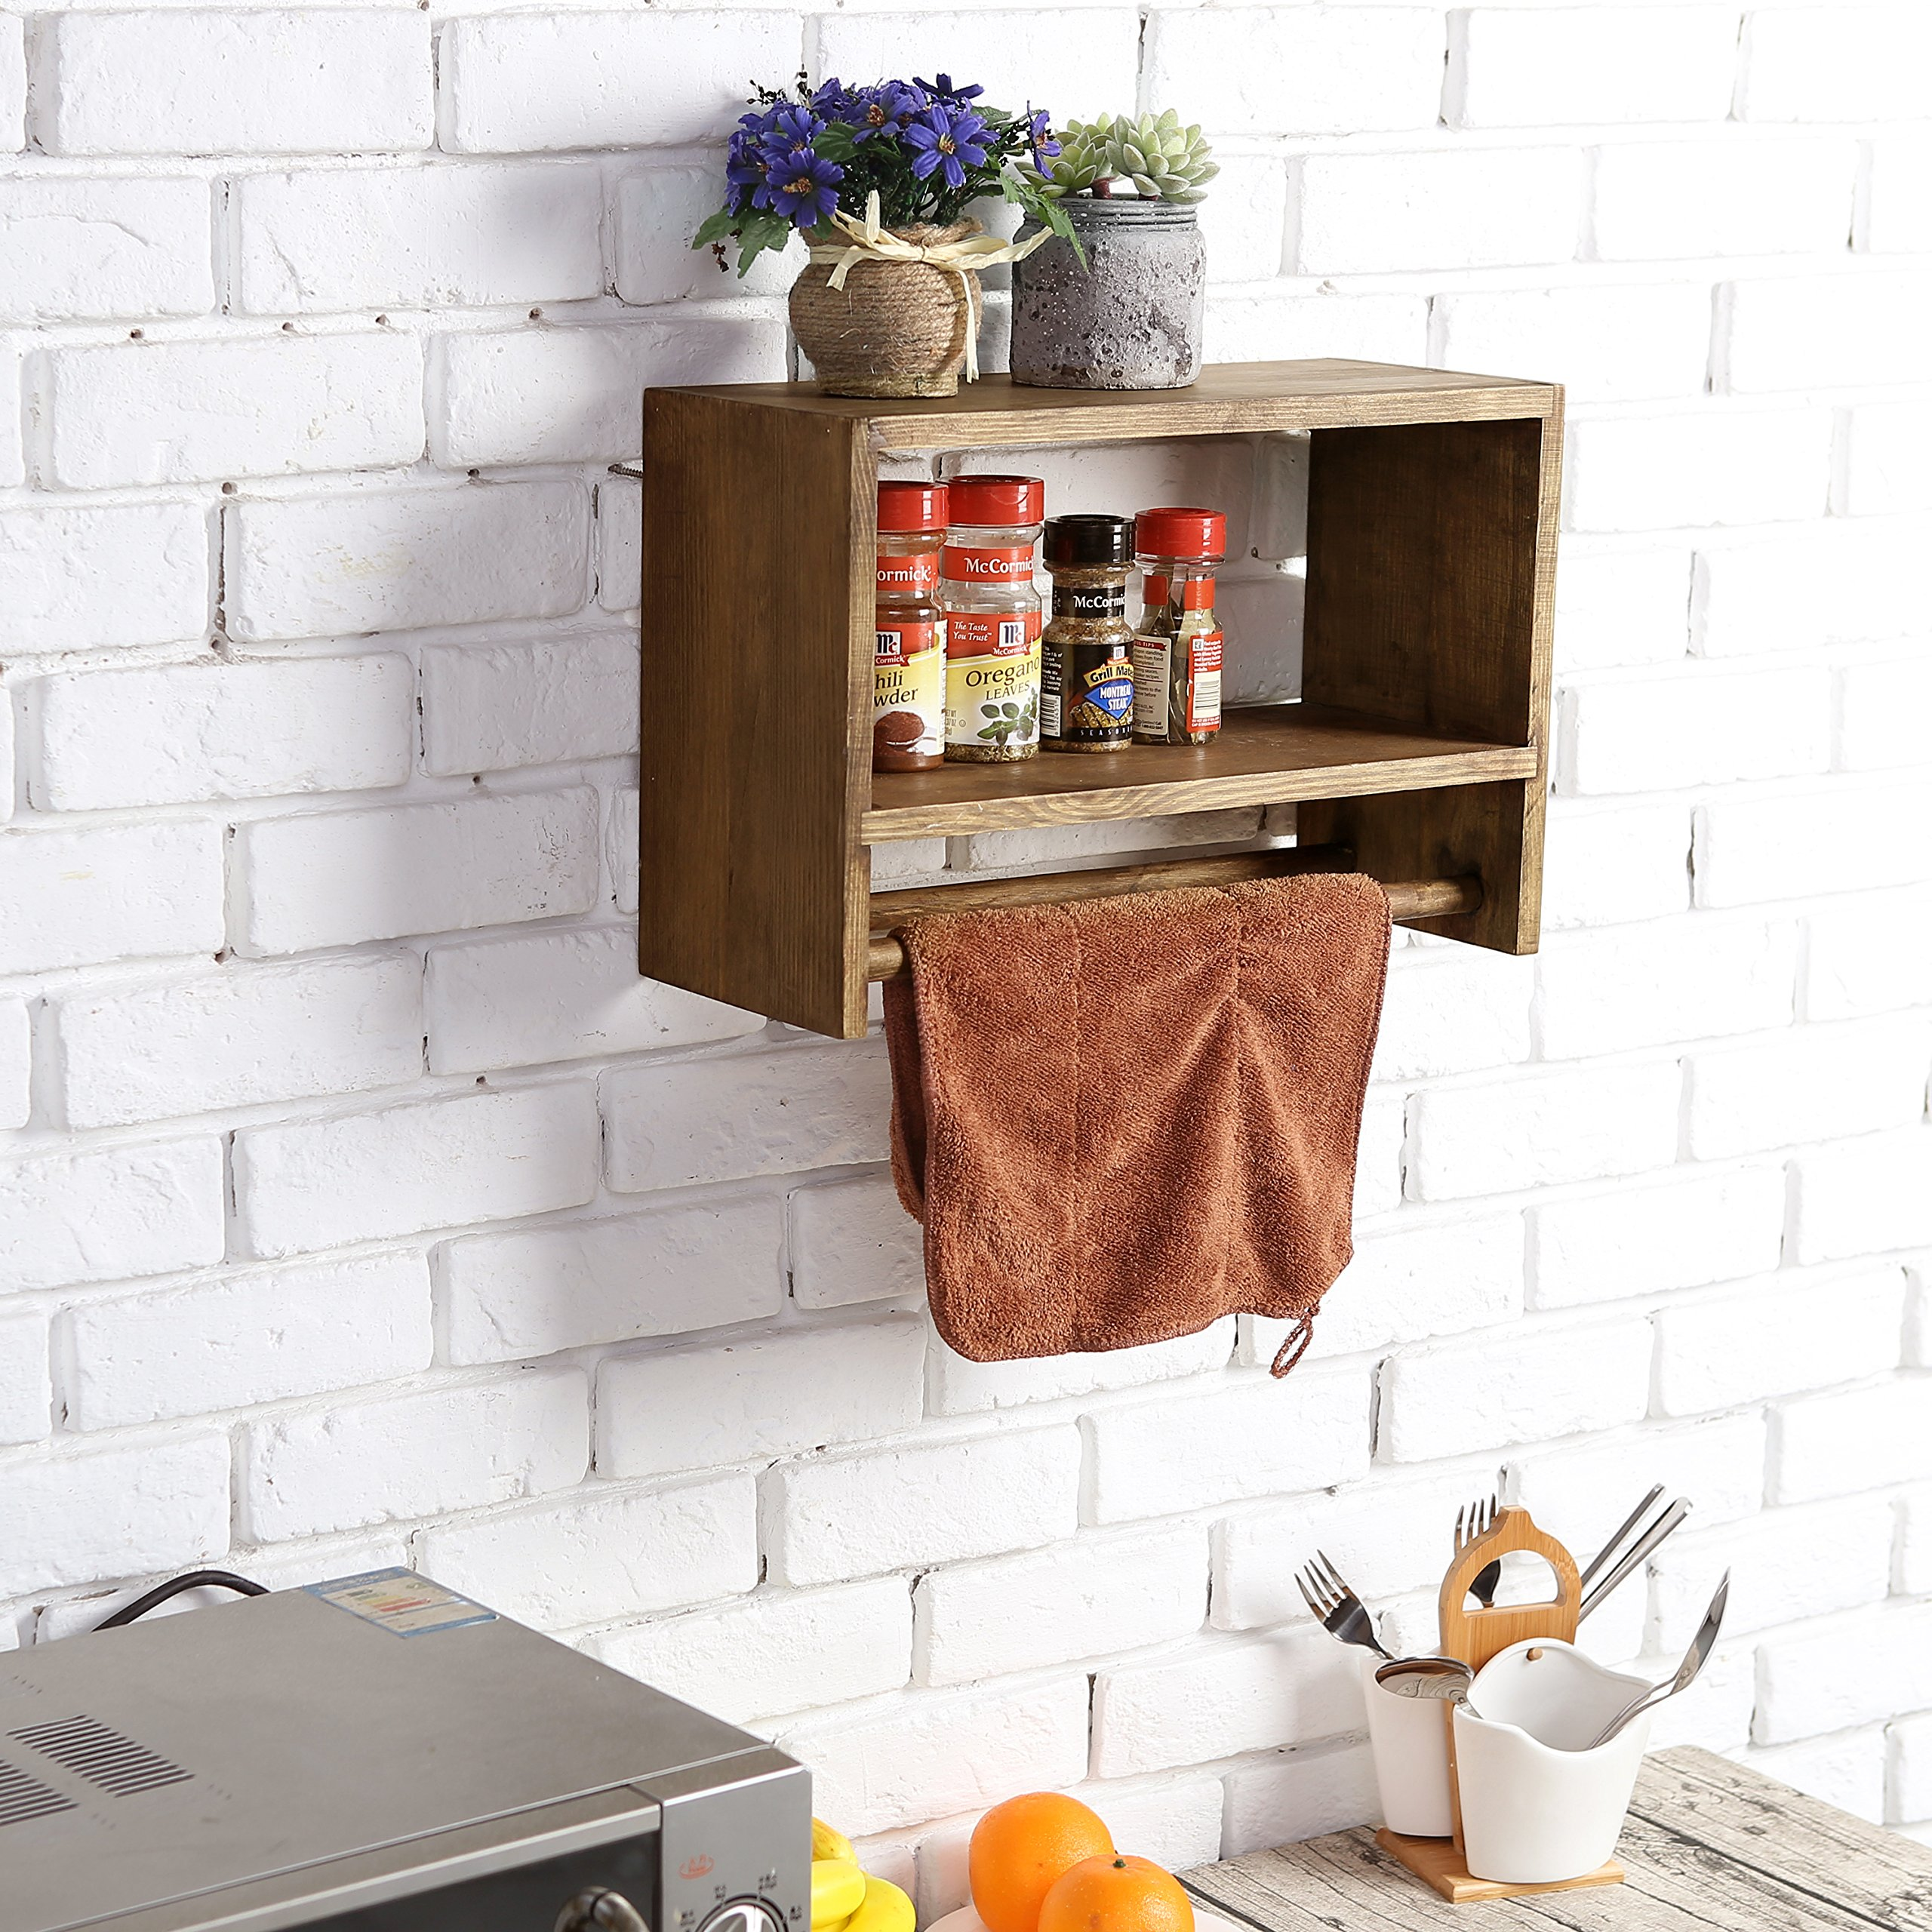 Rustic Wall Mounted Wood Spice Rack, Kitchen Floating Shelf with Double Towel Bar by MyGift (Image #4)